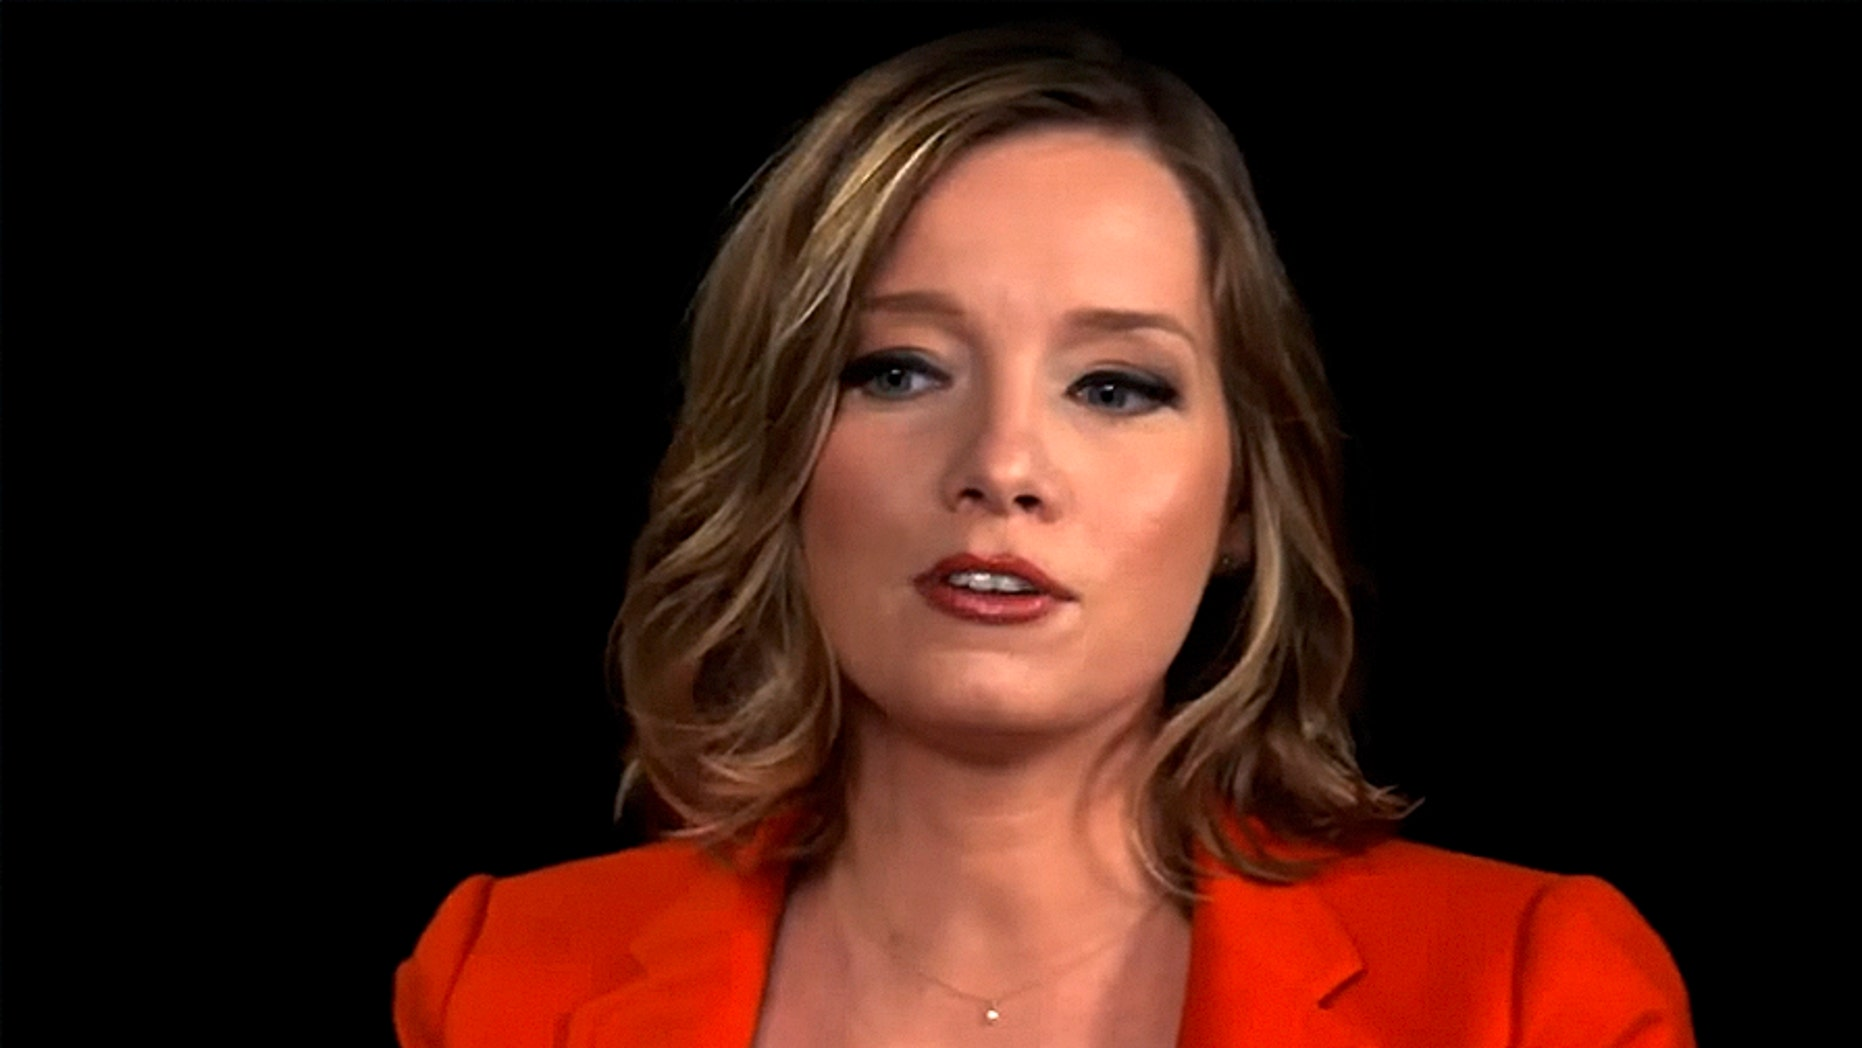 GOP pollster Kristen Soltis Anderson is worried President Trump could invalidate future elections.